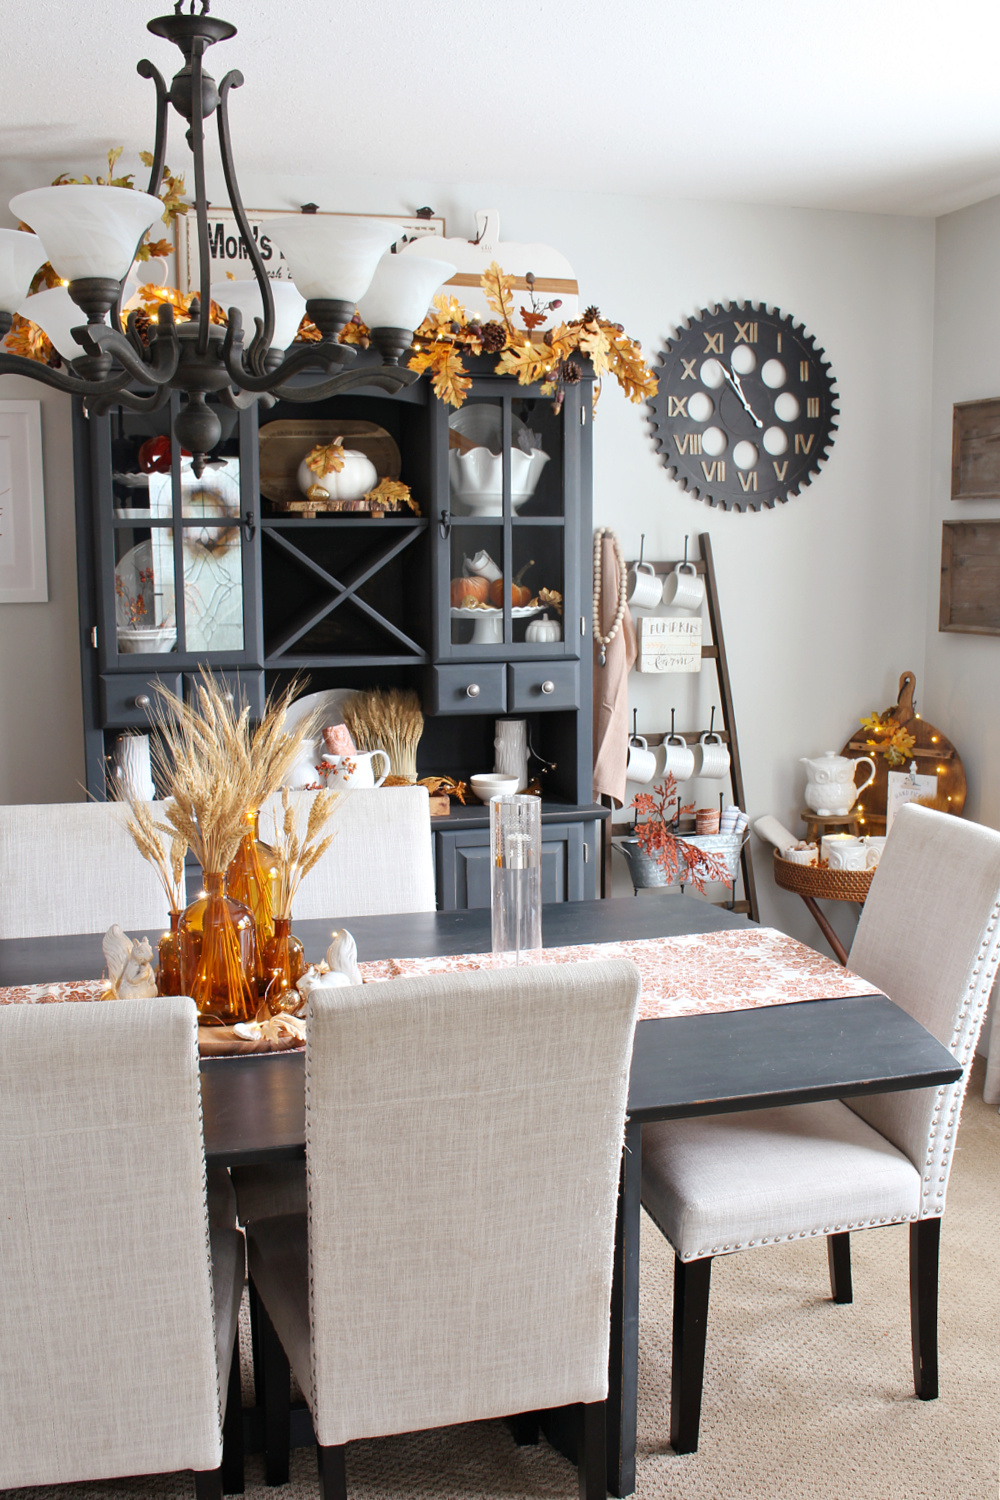 Beautiful dining room decorated for fall with traditional fall colors.